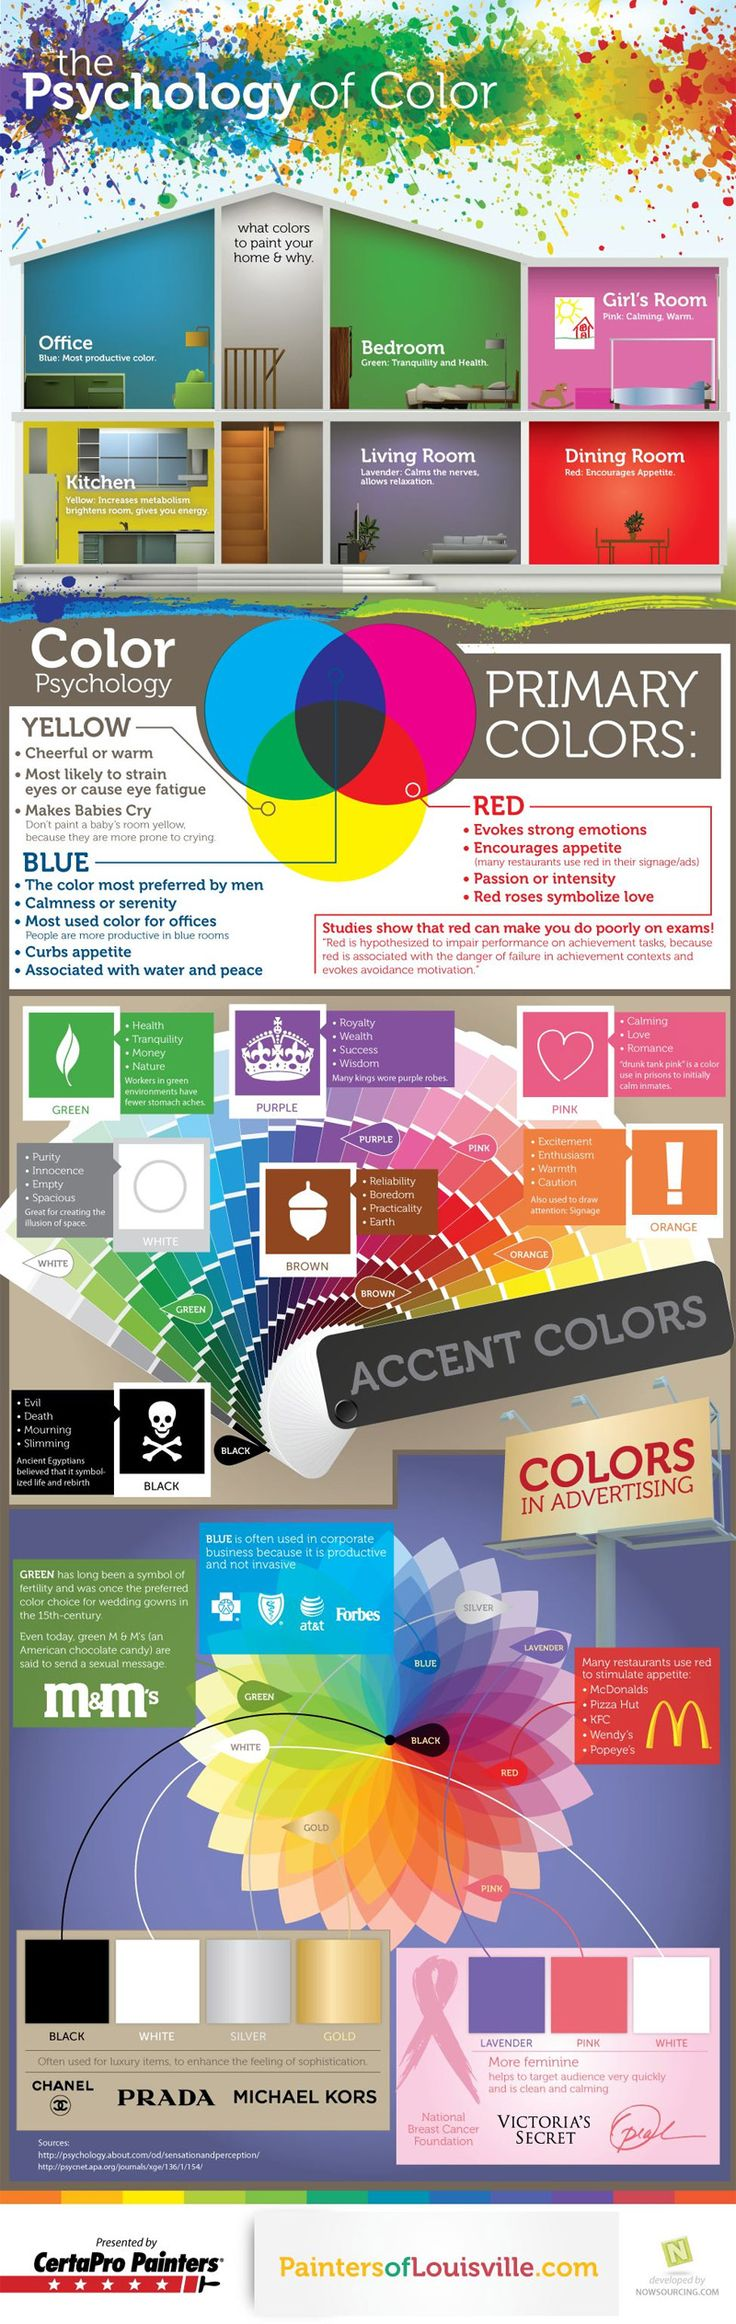 interior design poster - 1000+ ideas about olorful Interior Design on Pinterest Design ...